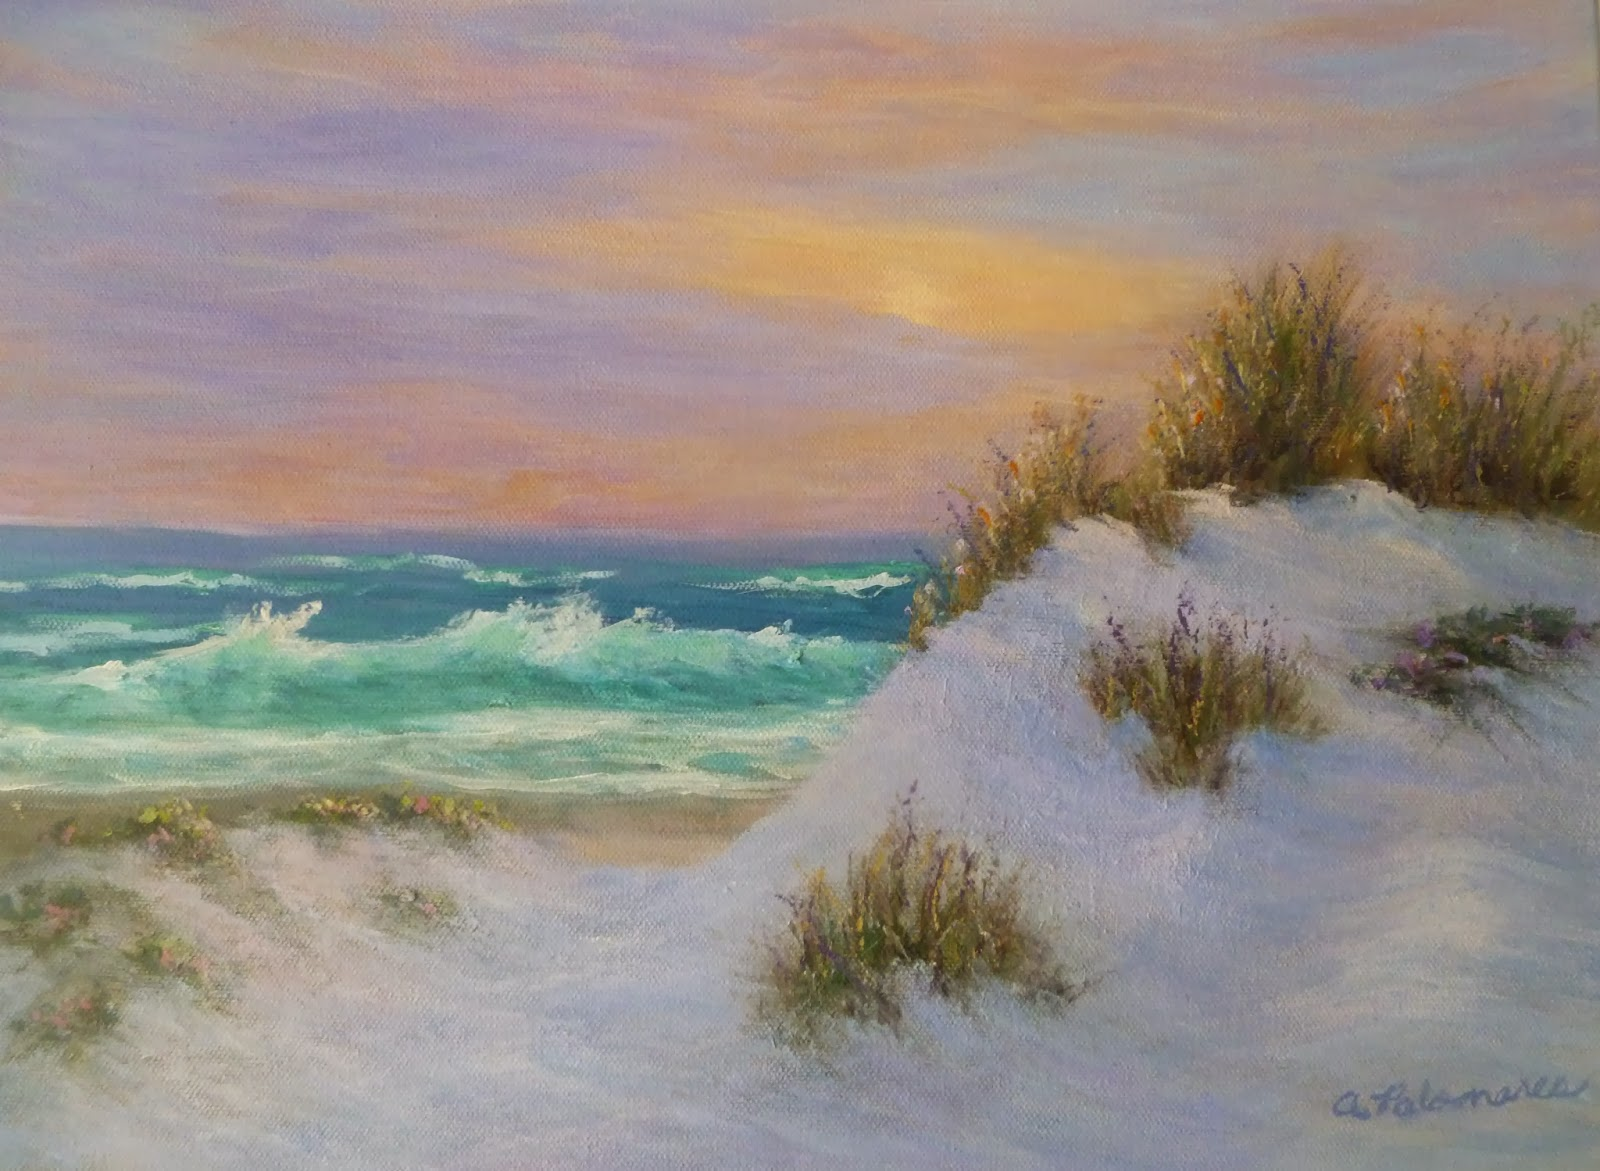 Painting of dunes, ocean and sunset